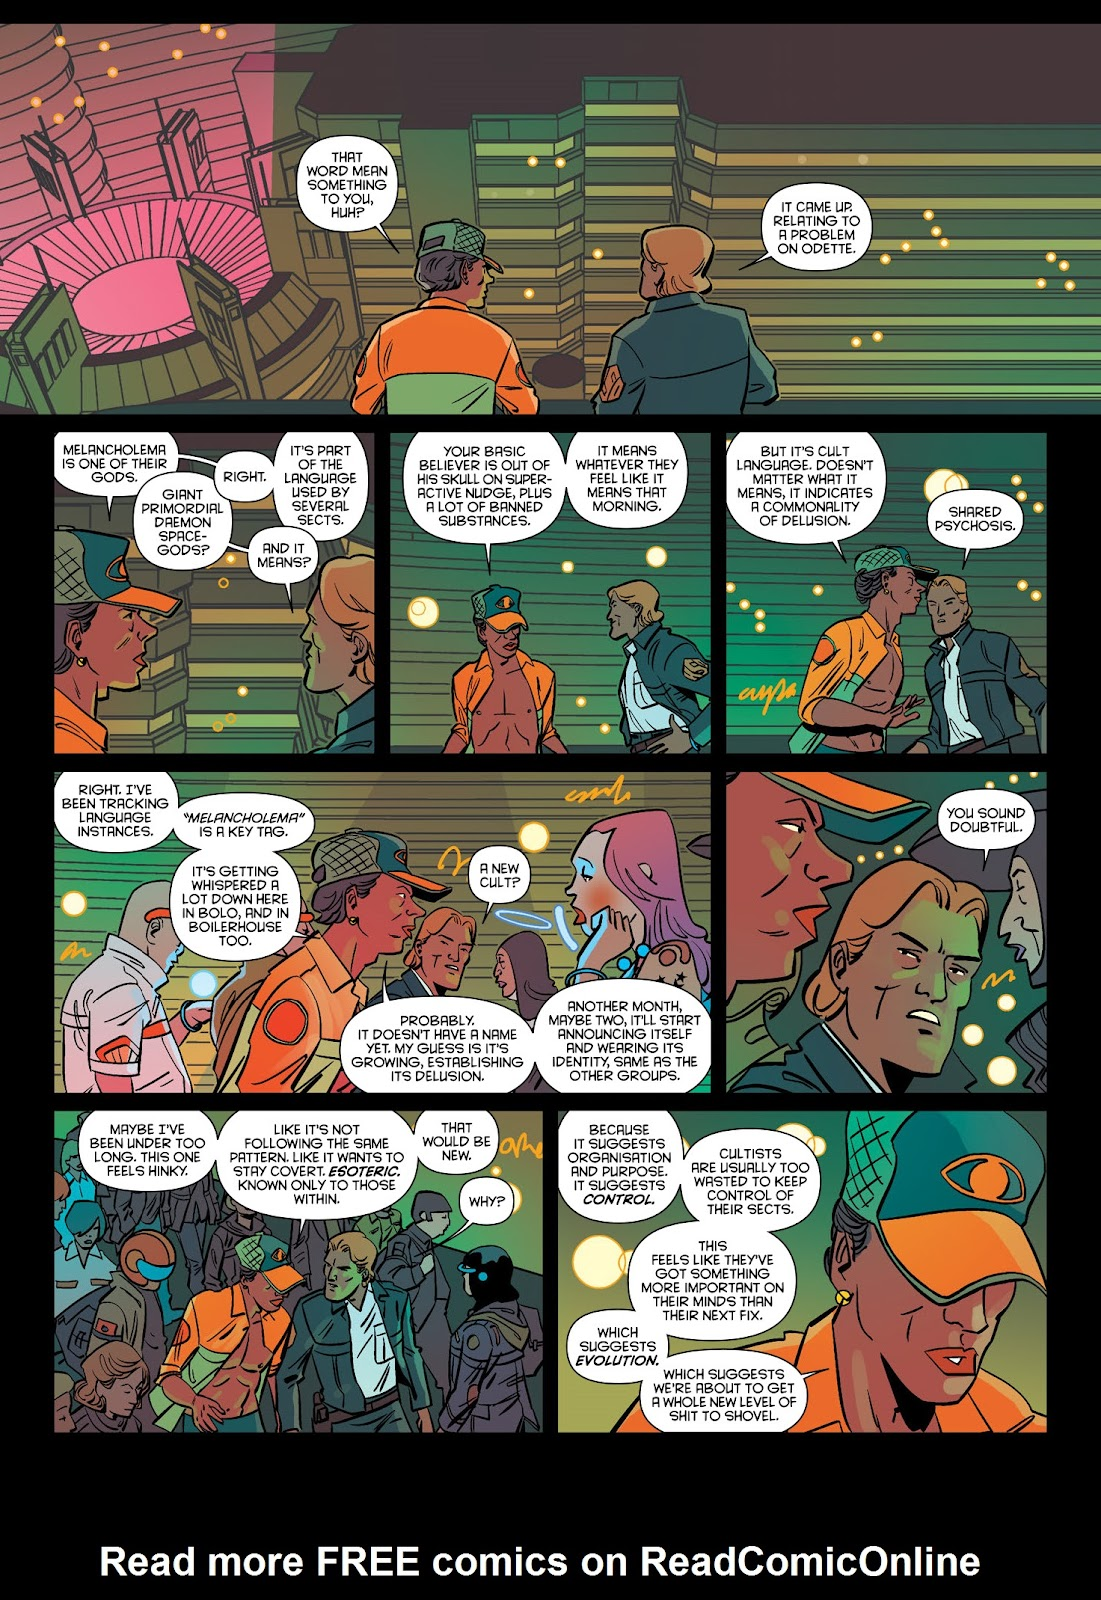 Read online Brink comic -  Issue # TPB 1 - 26